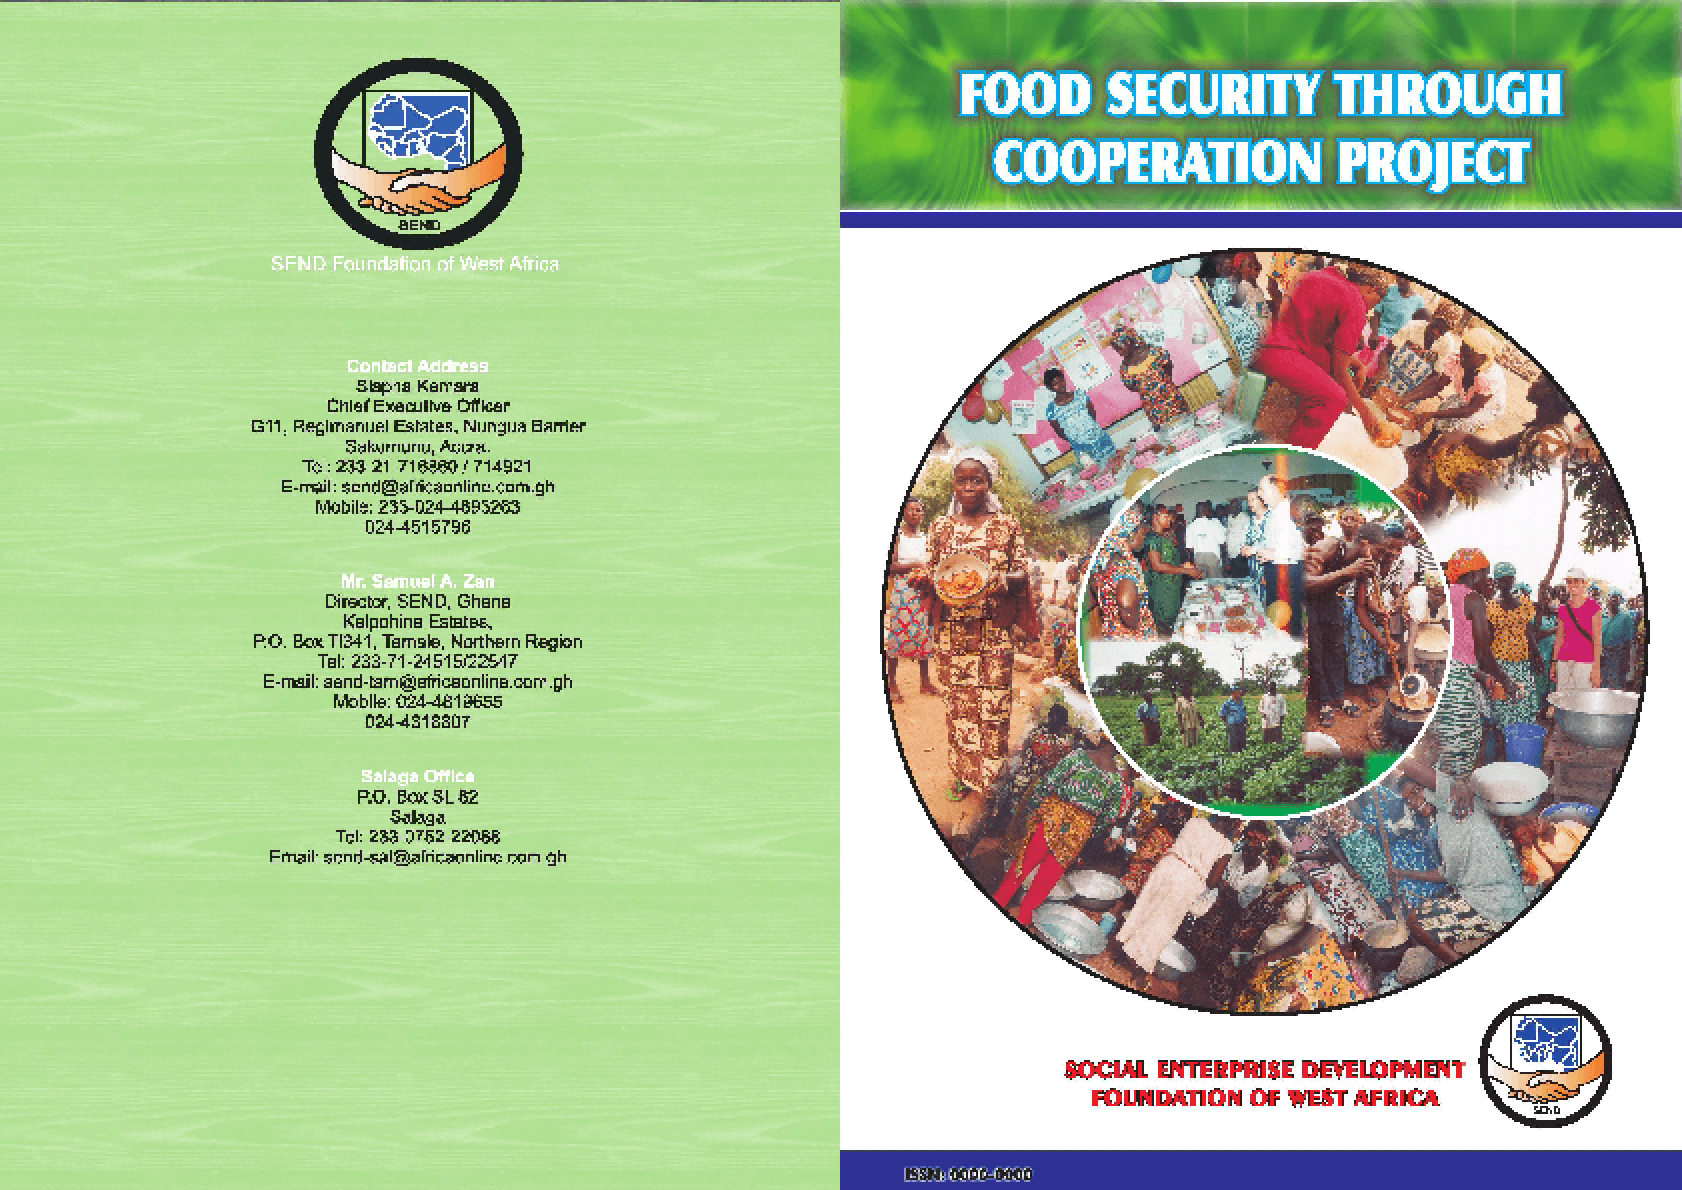 Food security through cooperation project